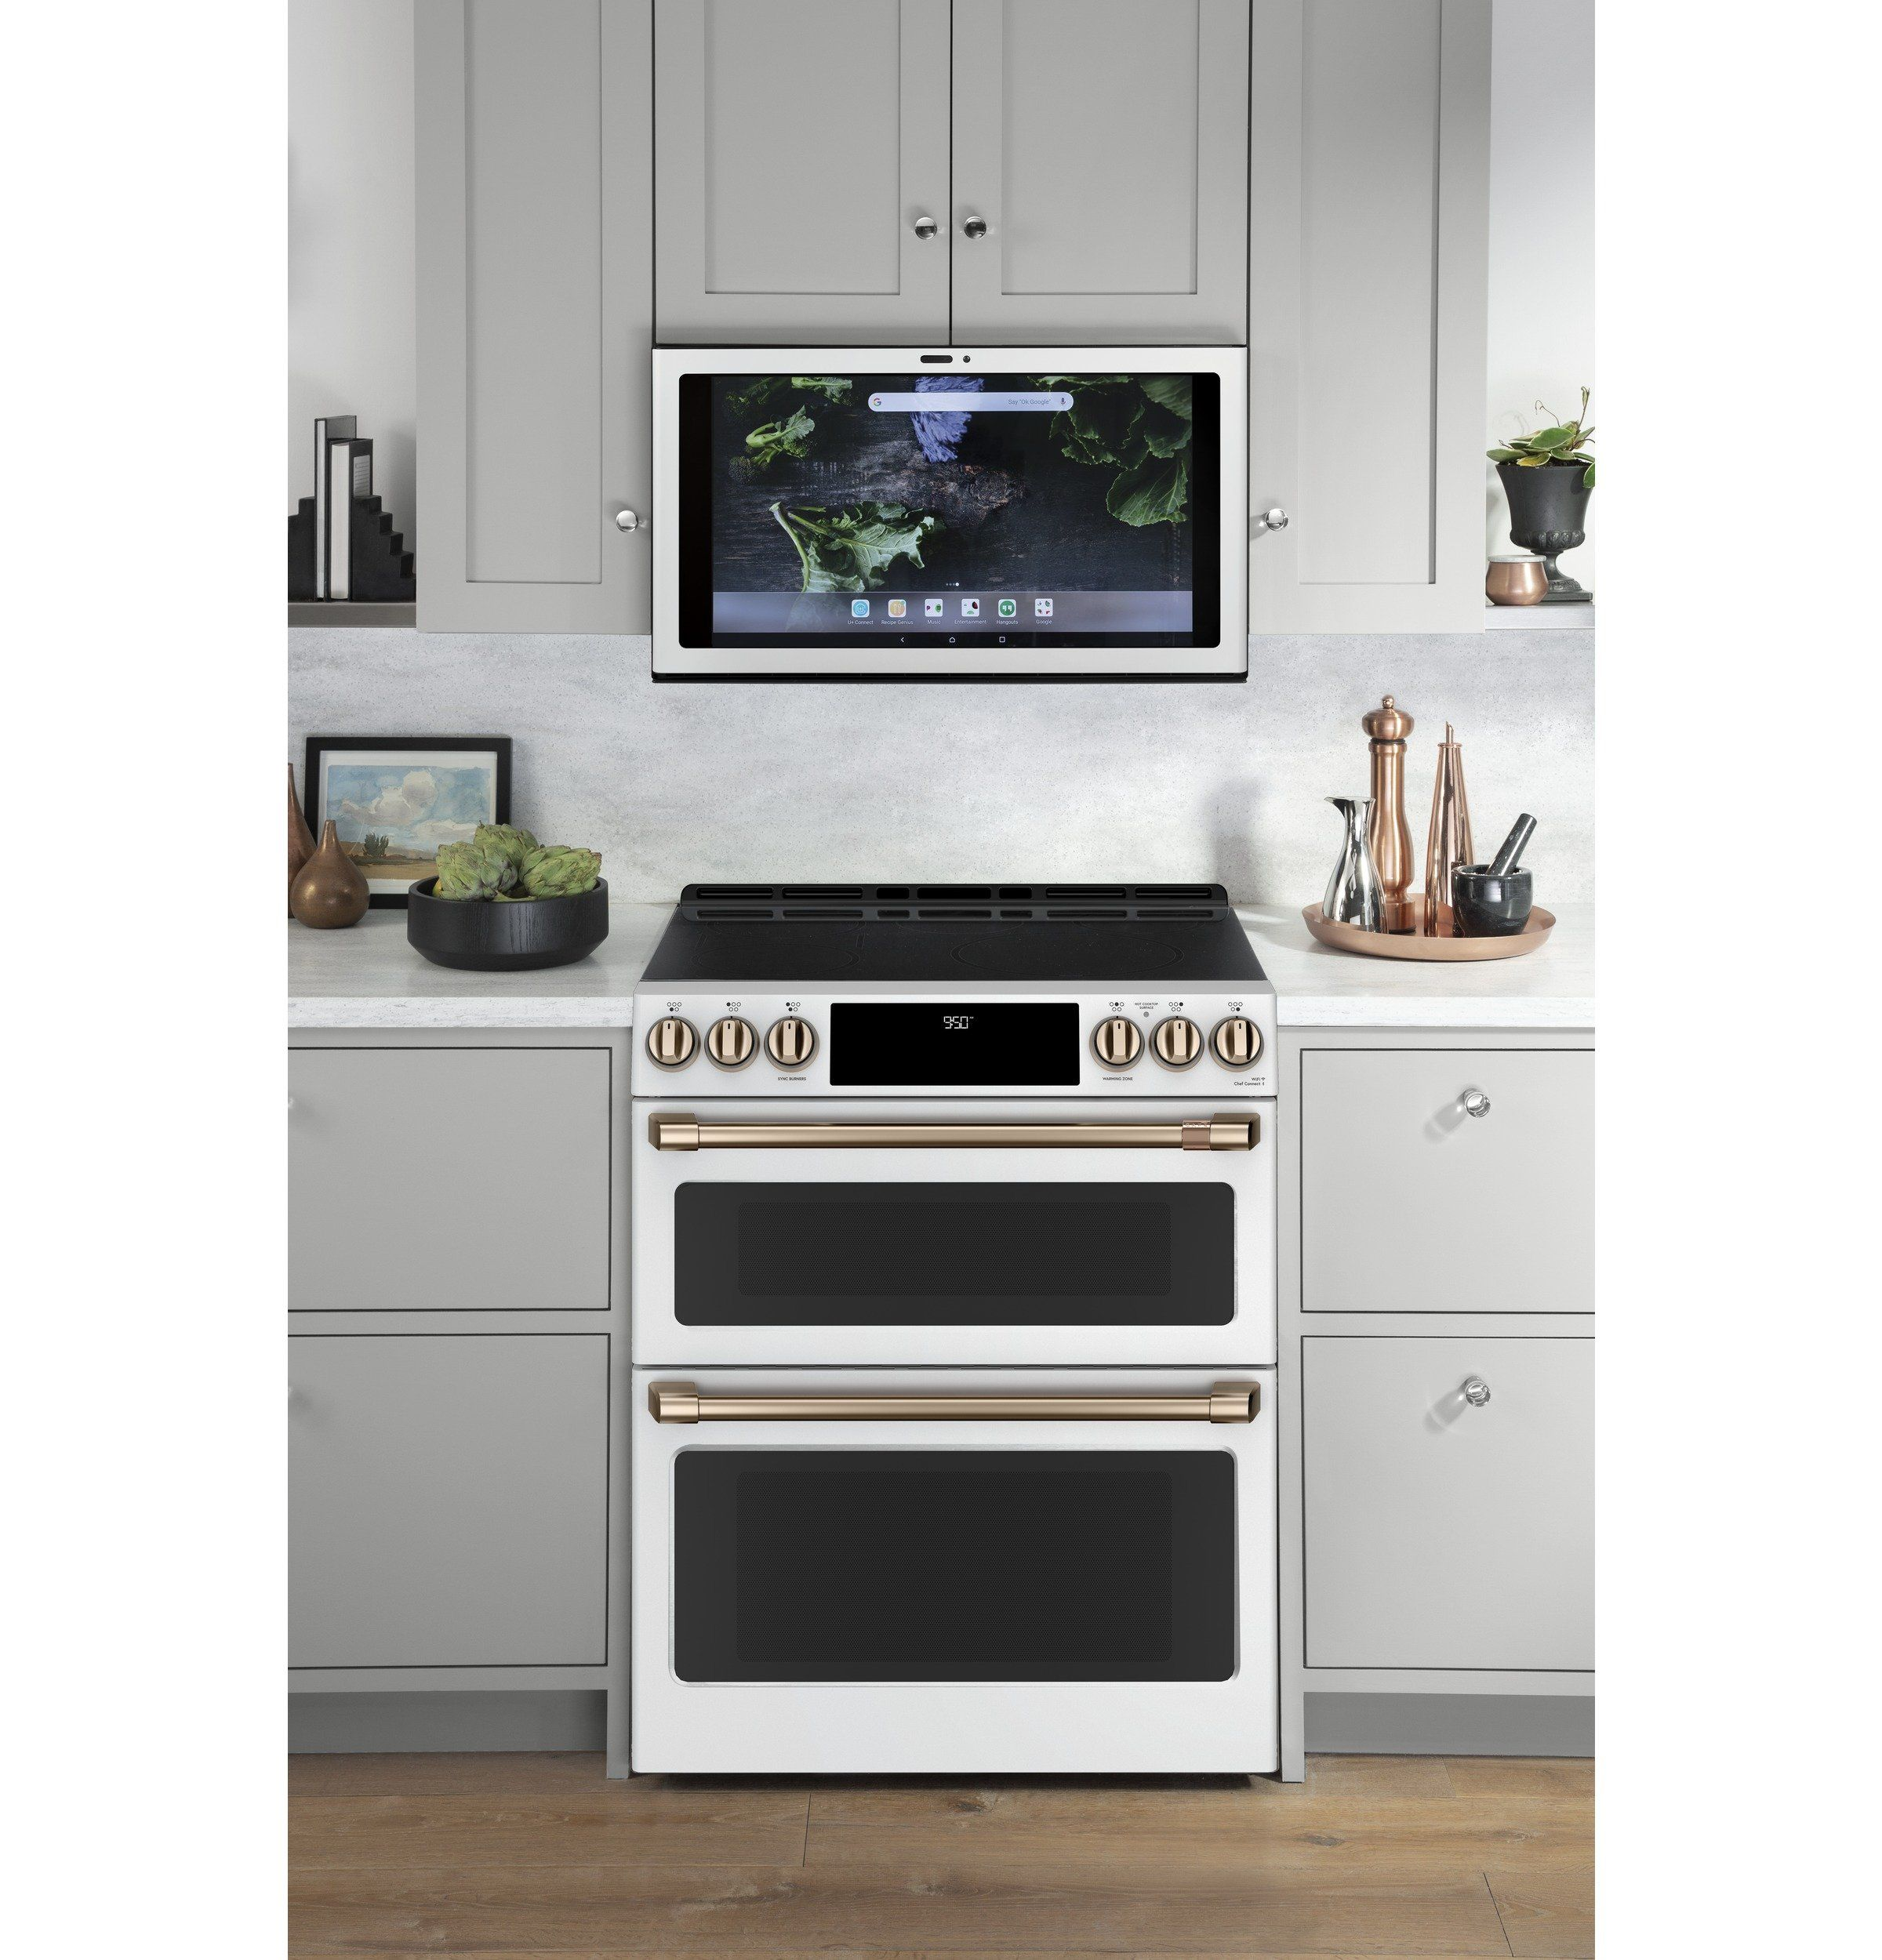 Ge Kitchen Hub Range Hood 30 Inch White Rc Willey Furniture Store Gas Range Double Oven Double Oven Range Gas Double Oven